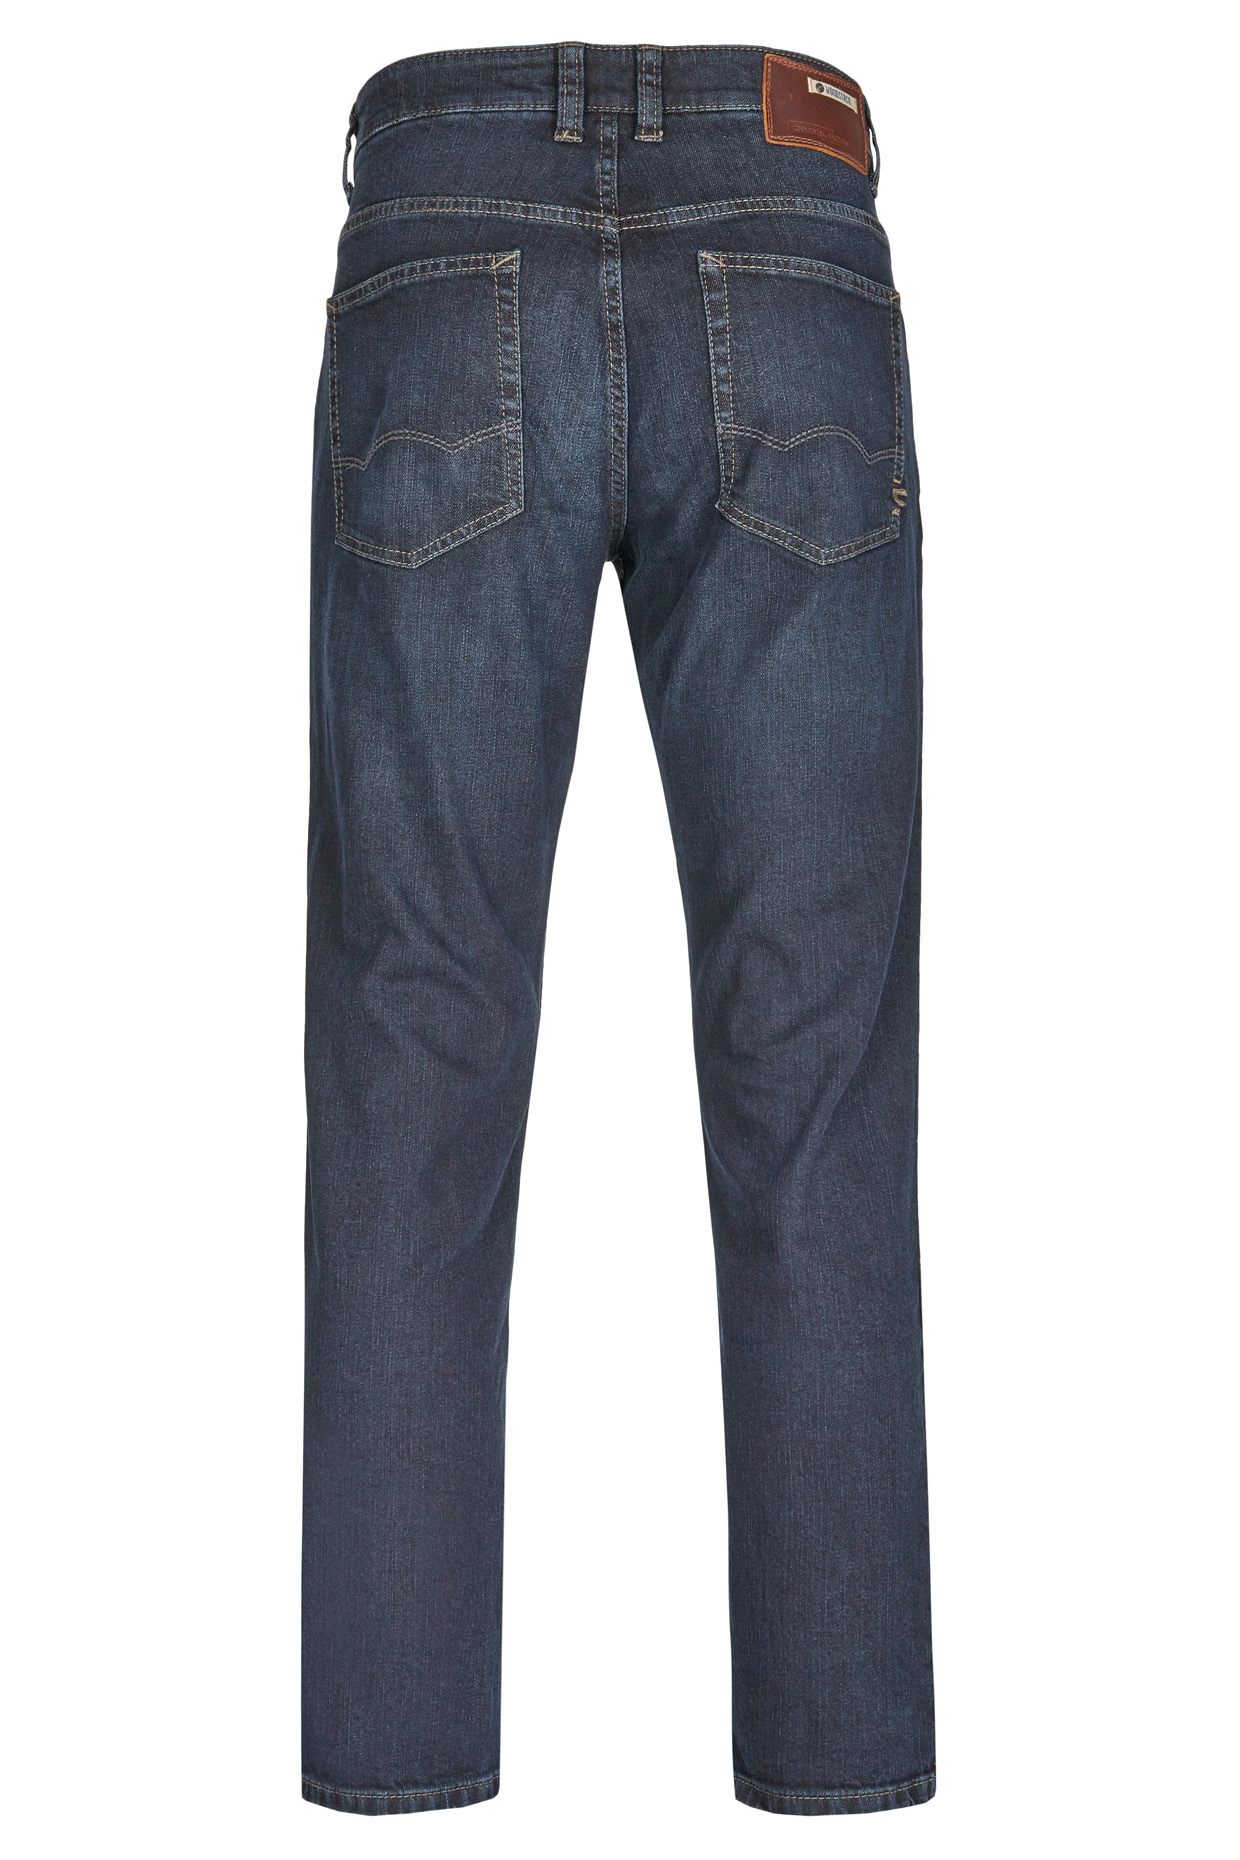 0f04e5588f Camel Active Men's Straight Leg Woodstock Jeans | Jeans | Jeans ...